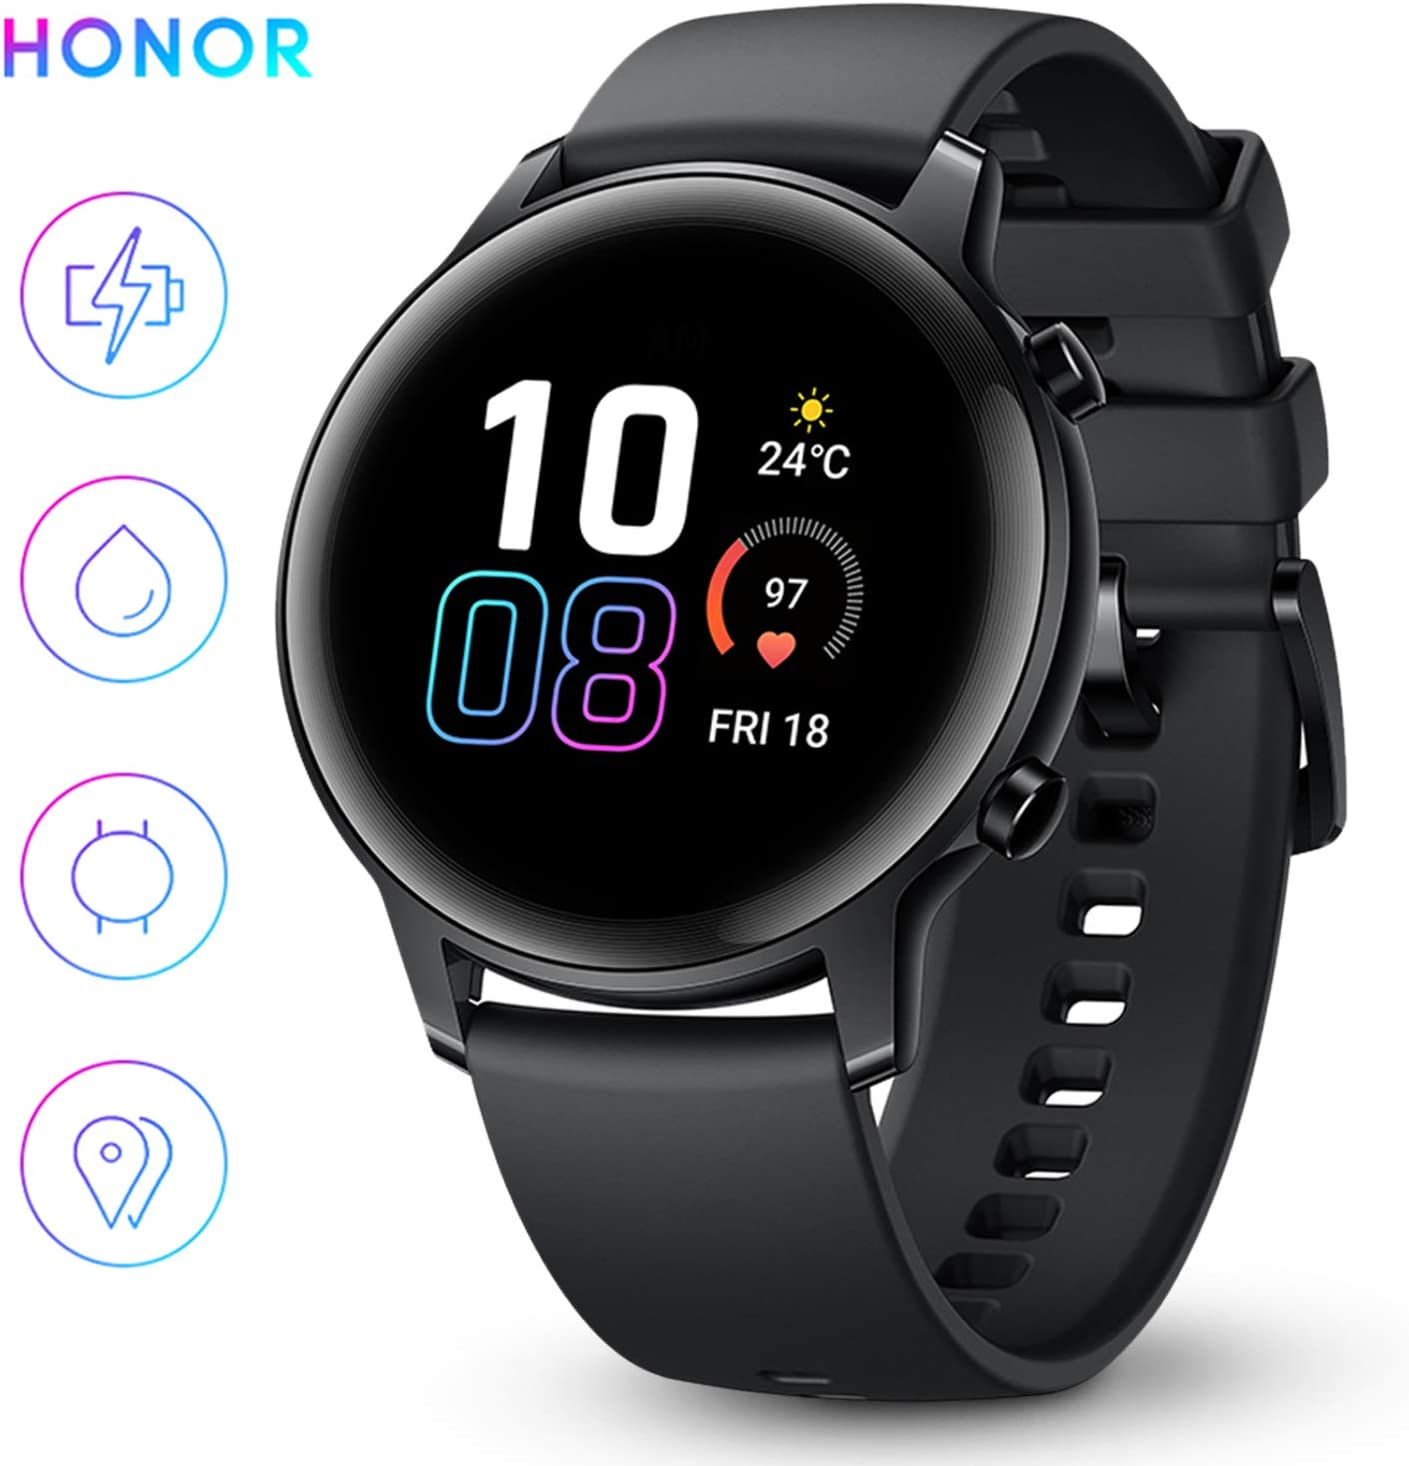 HONOR Smartwatch Magic Watch 2, 42mm Reloj Inteligente con Pulsómetro hasta 14 días de Batería 5ATM Waterproof Pantalla Táctil Amoled de 1.39